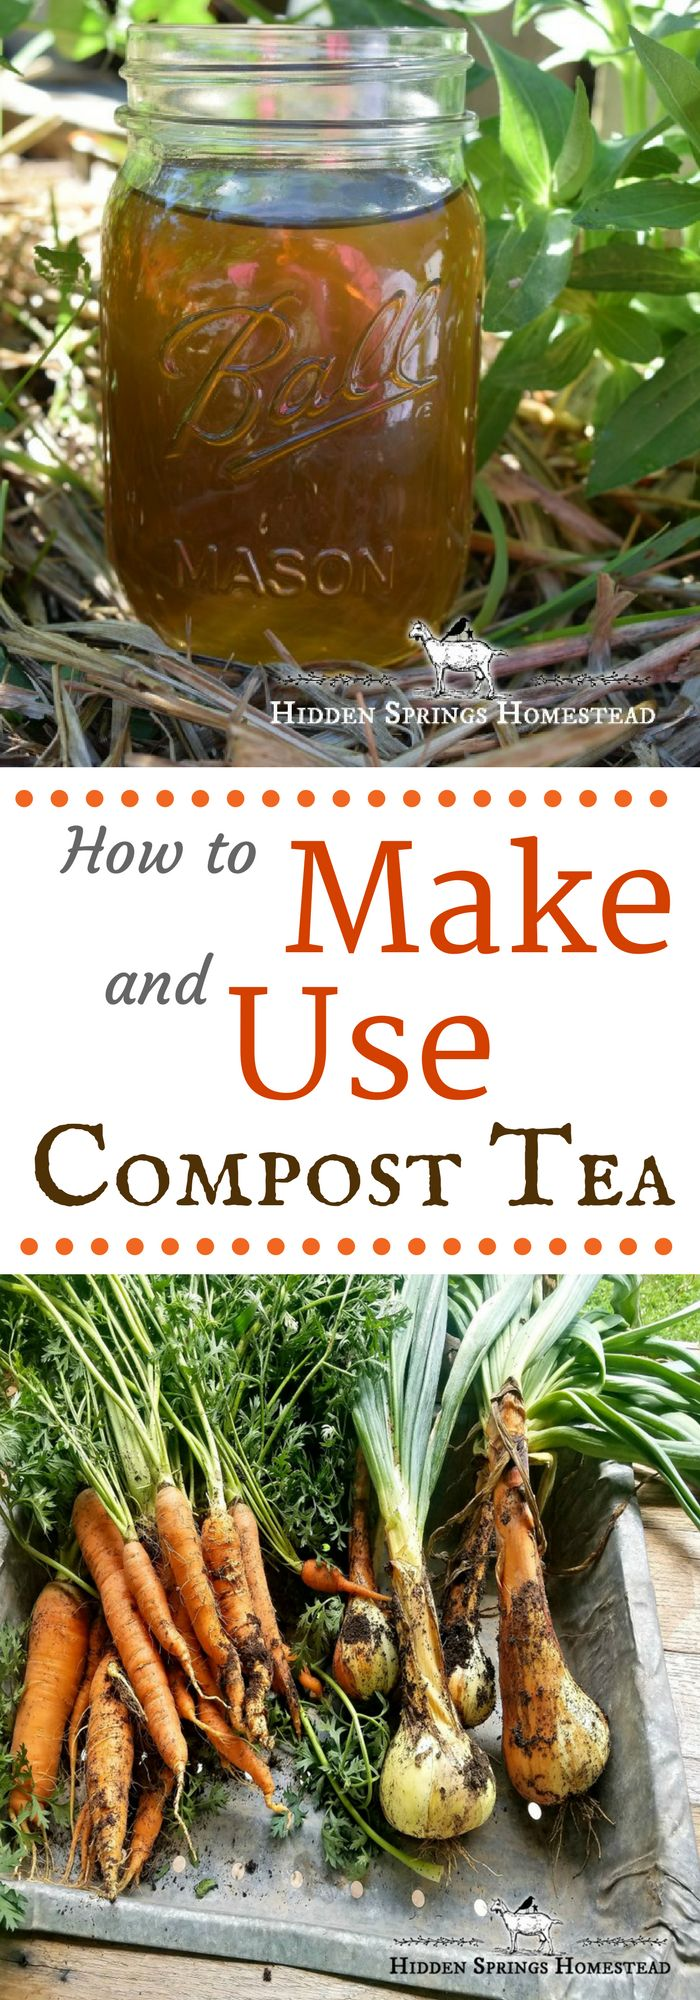 Let It Rot!: The Gardener's Guide to Composting (Third ...